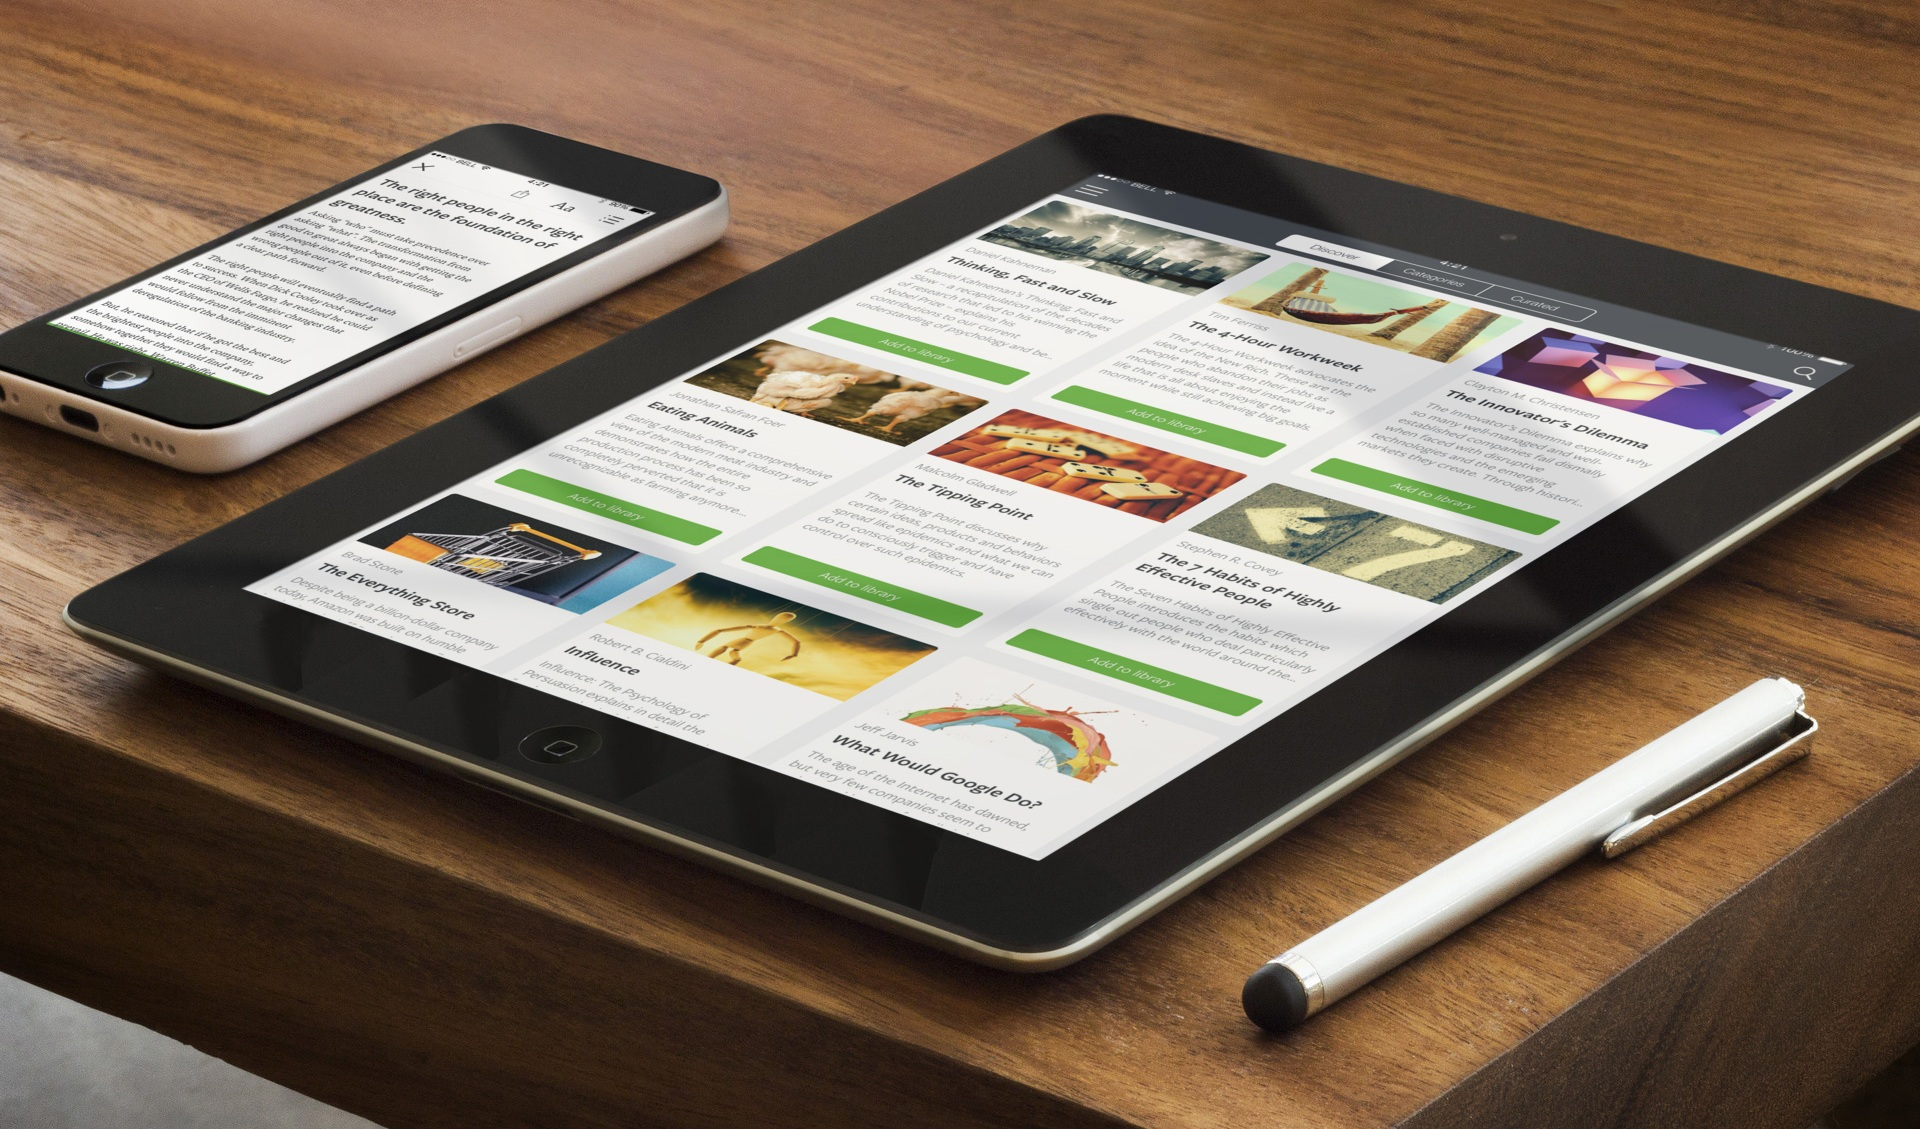 Blinkist Arrives for iPad